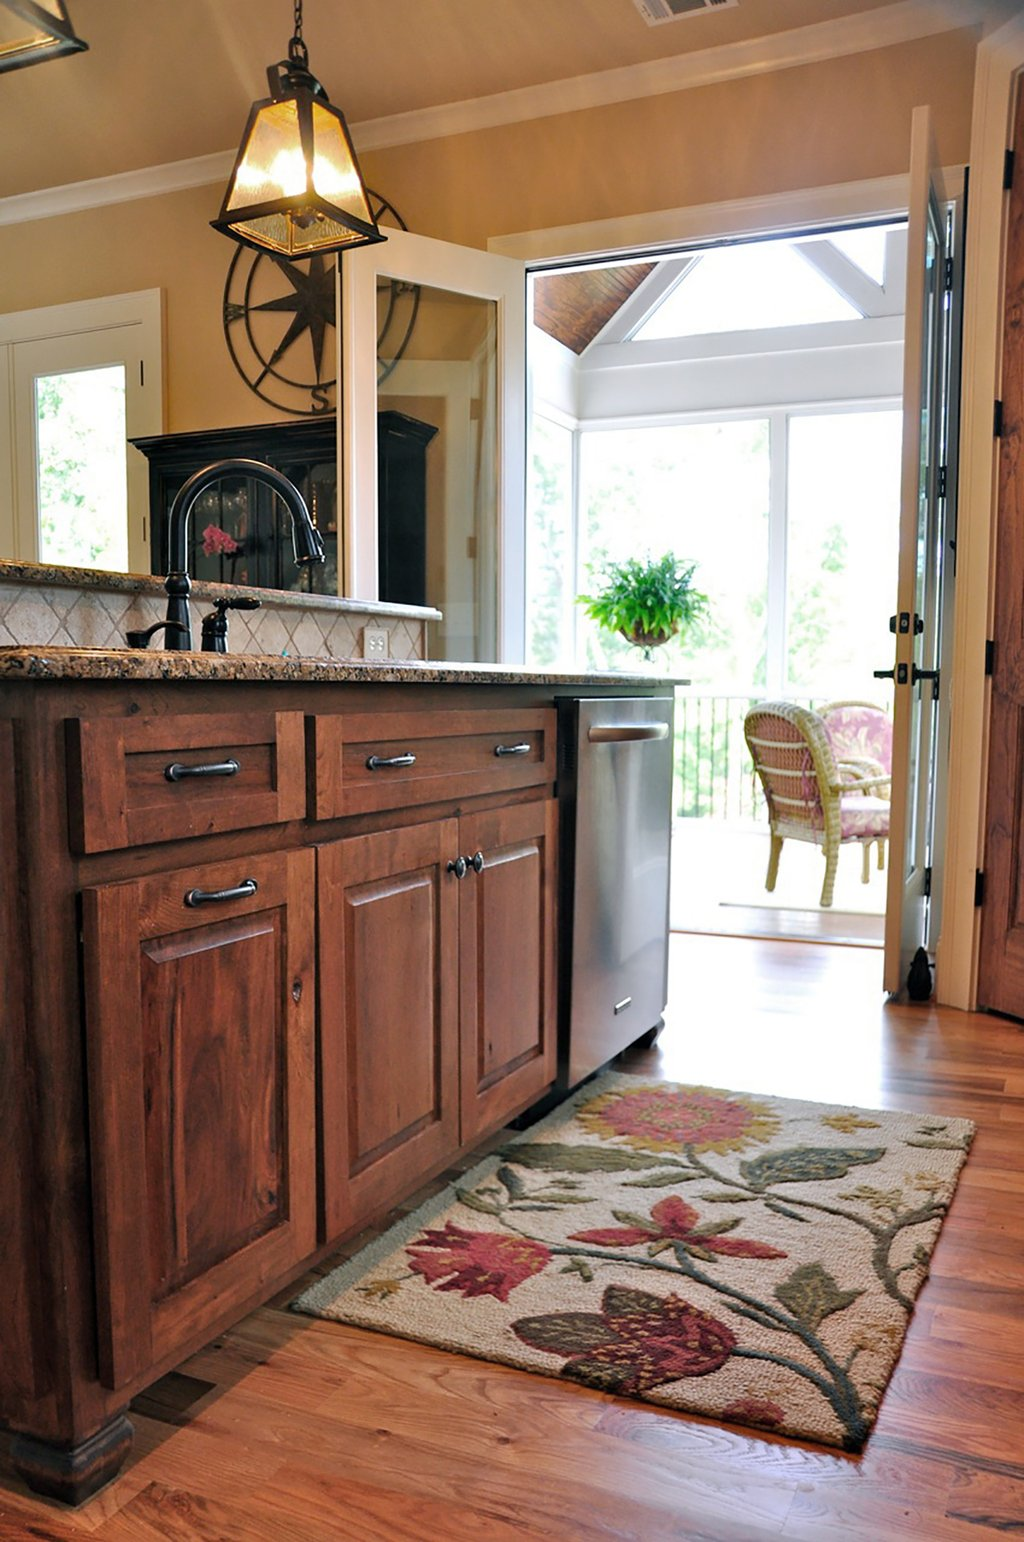 Craftsman style house plan 4 beds 3 5 baths 3807 sq ft for Craftsman style homes for sale in nh